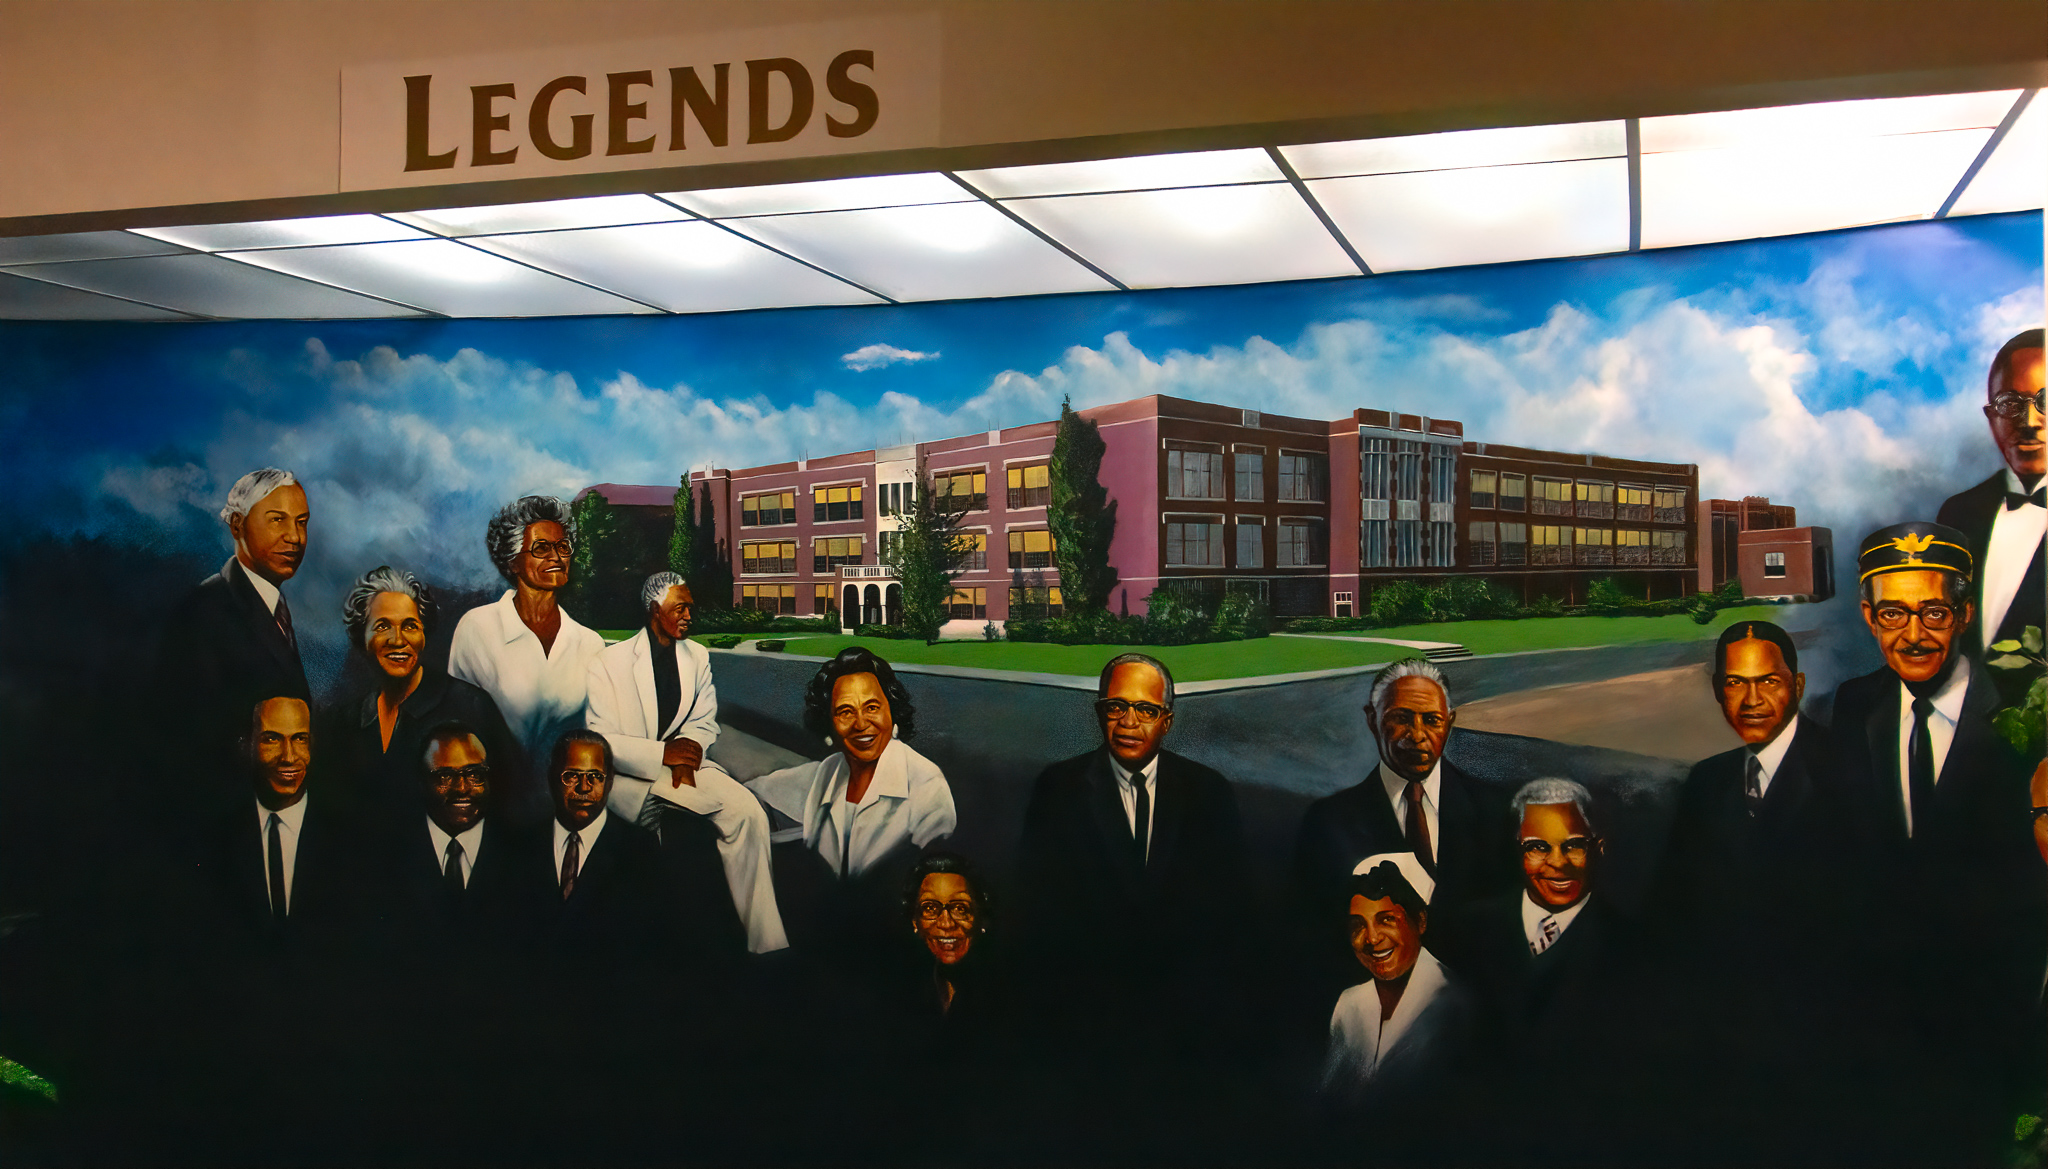 A mural of  Legends , at the entrance of the museum.